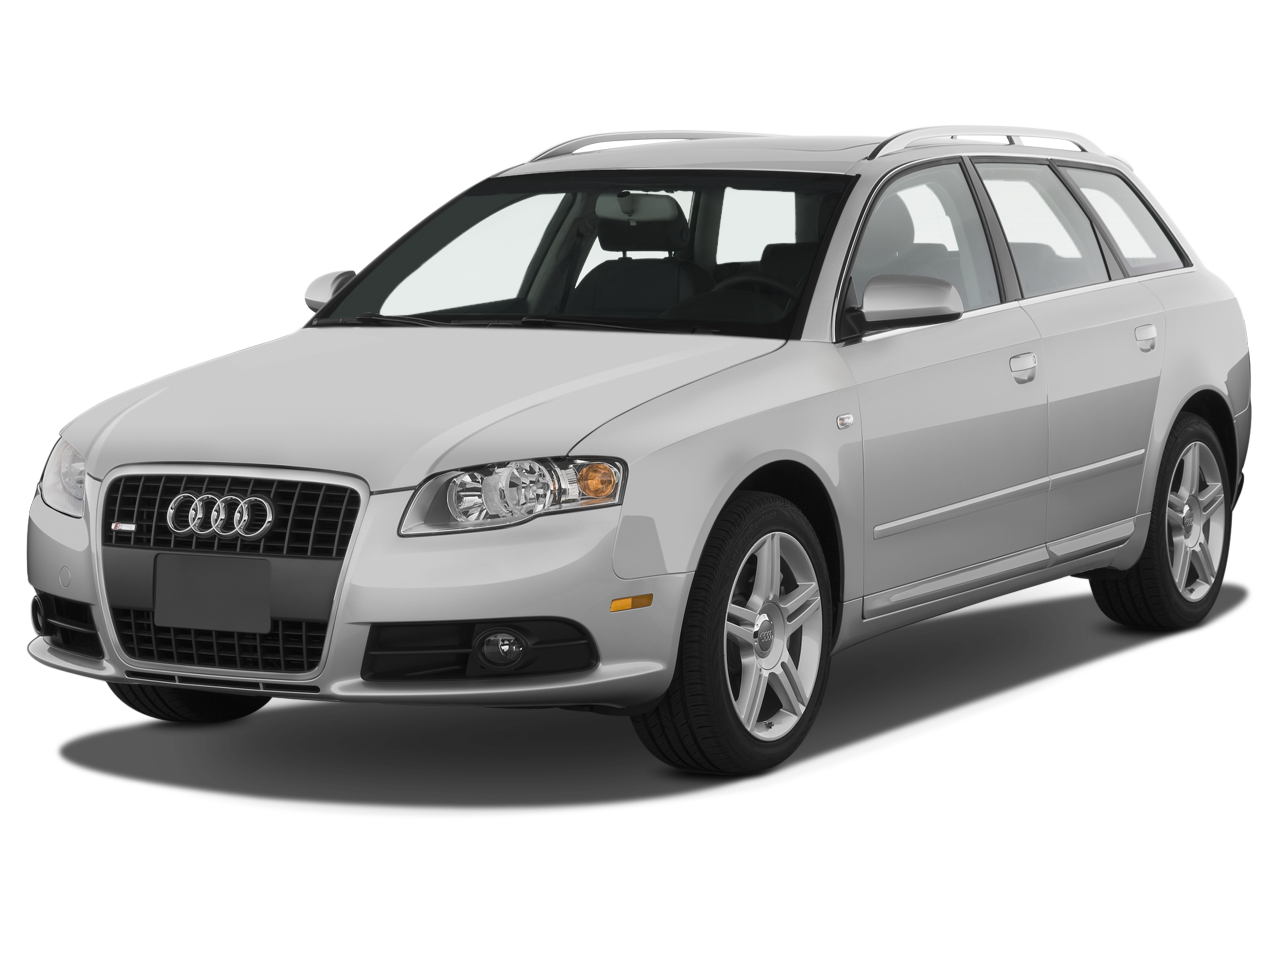 2008 Audi A4 Review Ratings Specs Prices and Photos